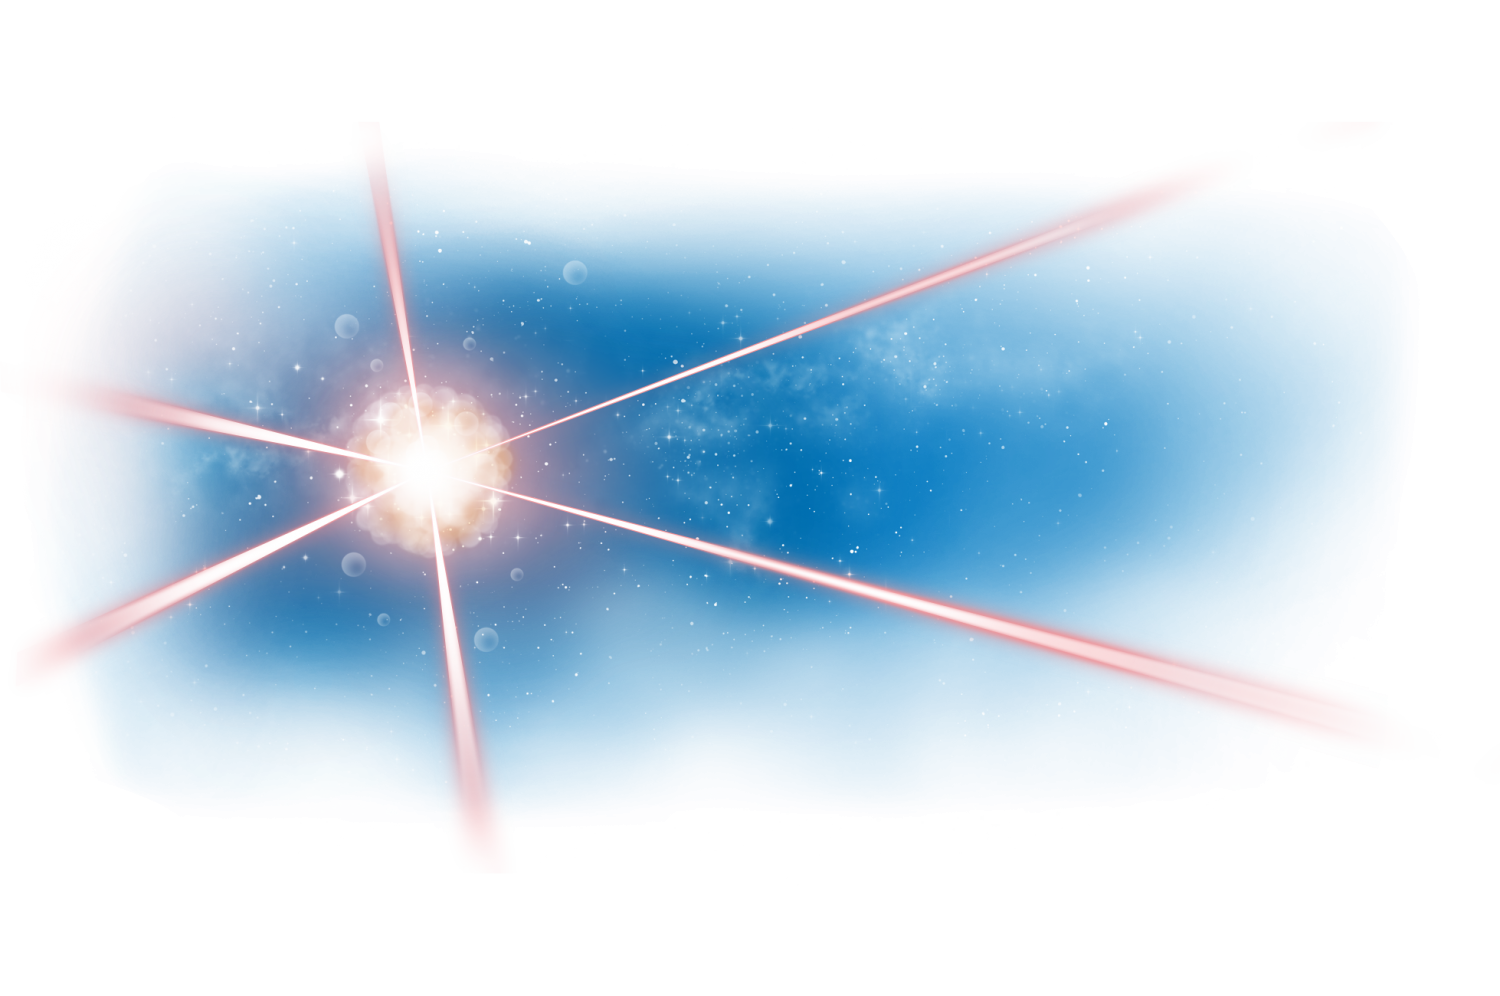 Artist's impression of an atom cloud at the crossing of laser beams created in outer space